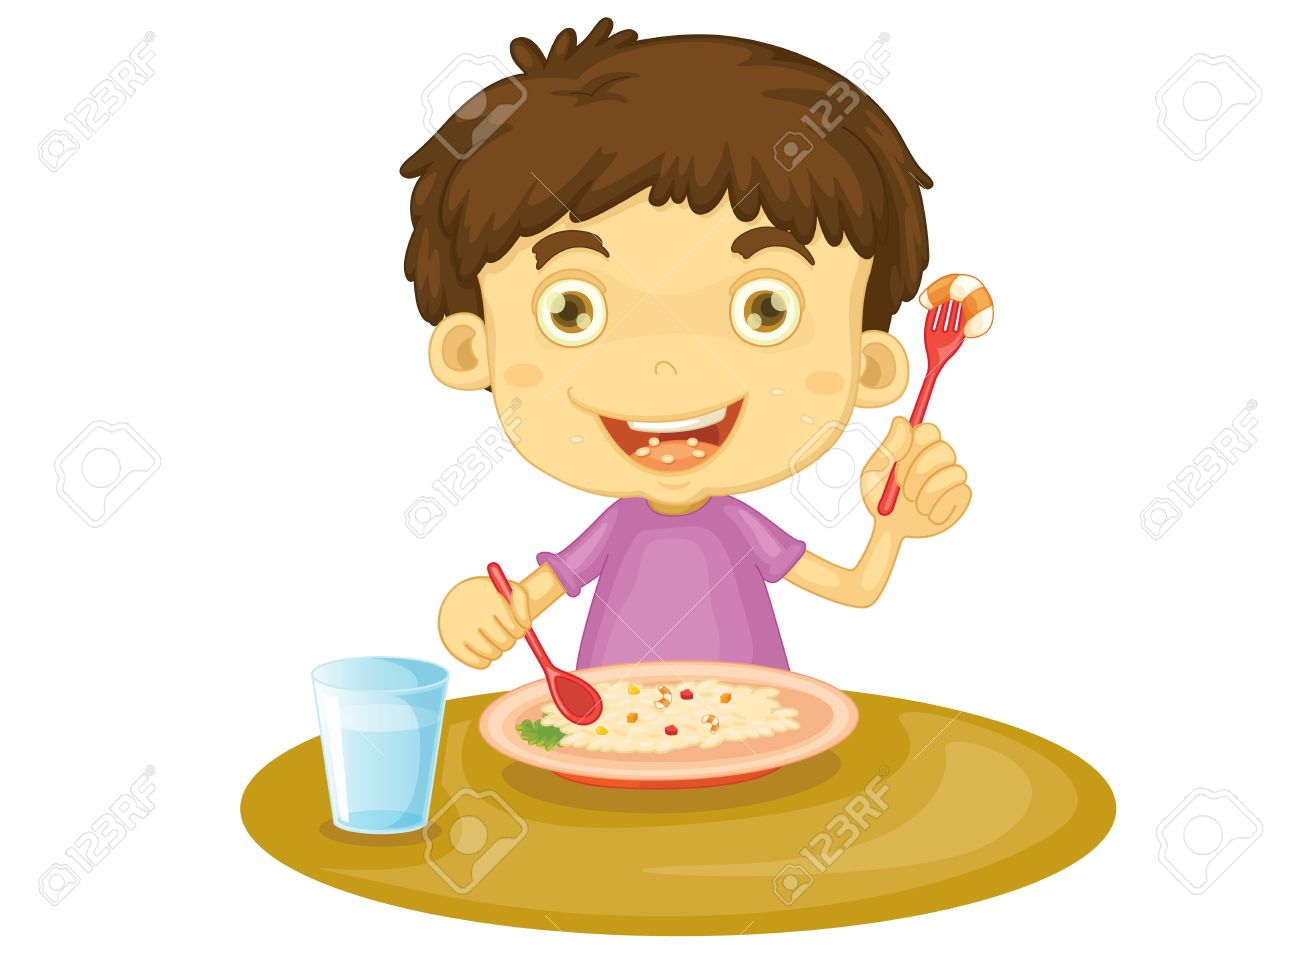 Illustration Of Child Eating At A Table Royalty Free Cliparts.